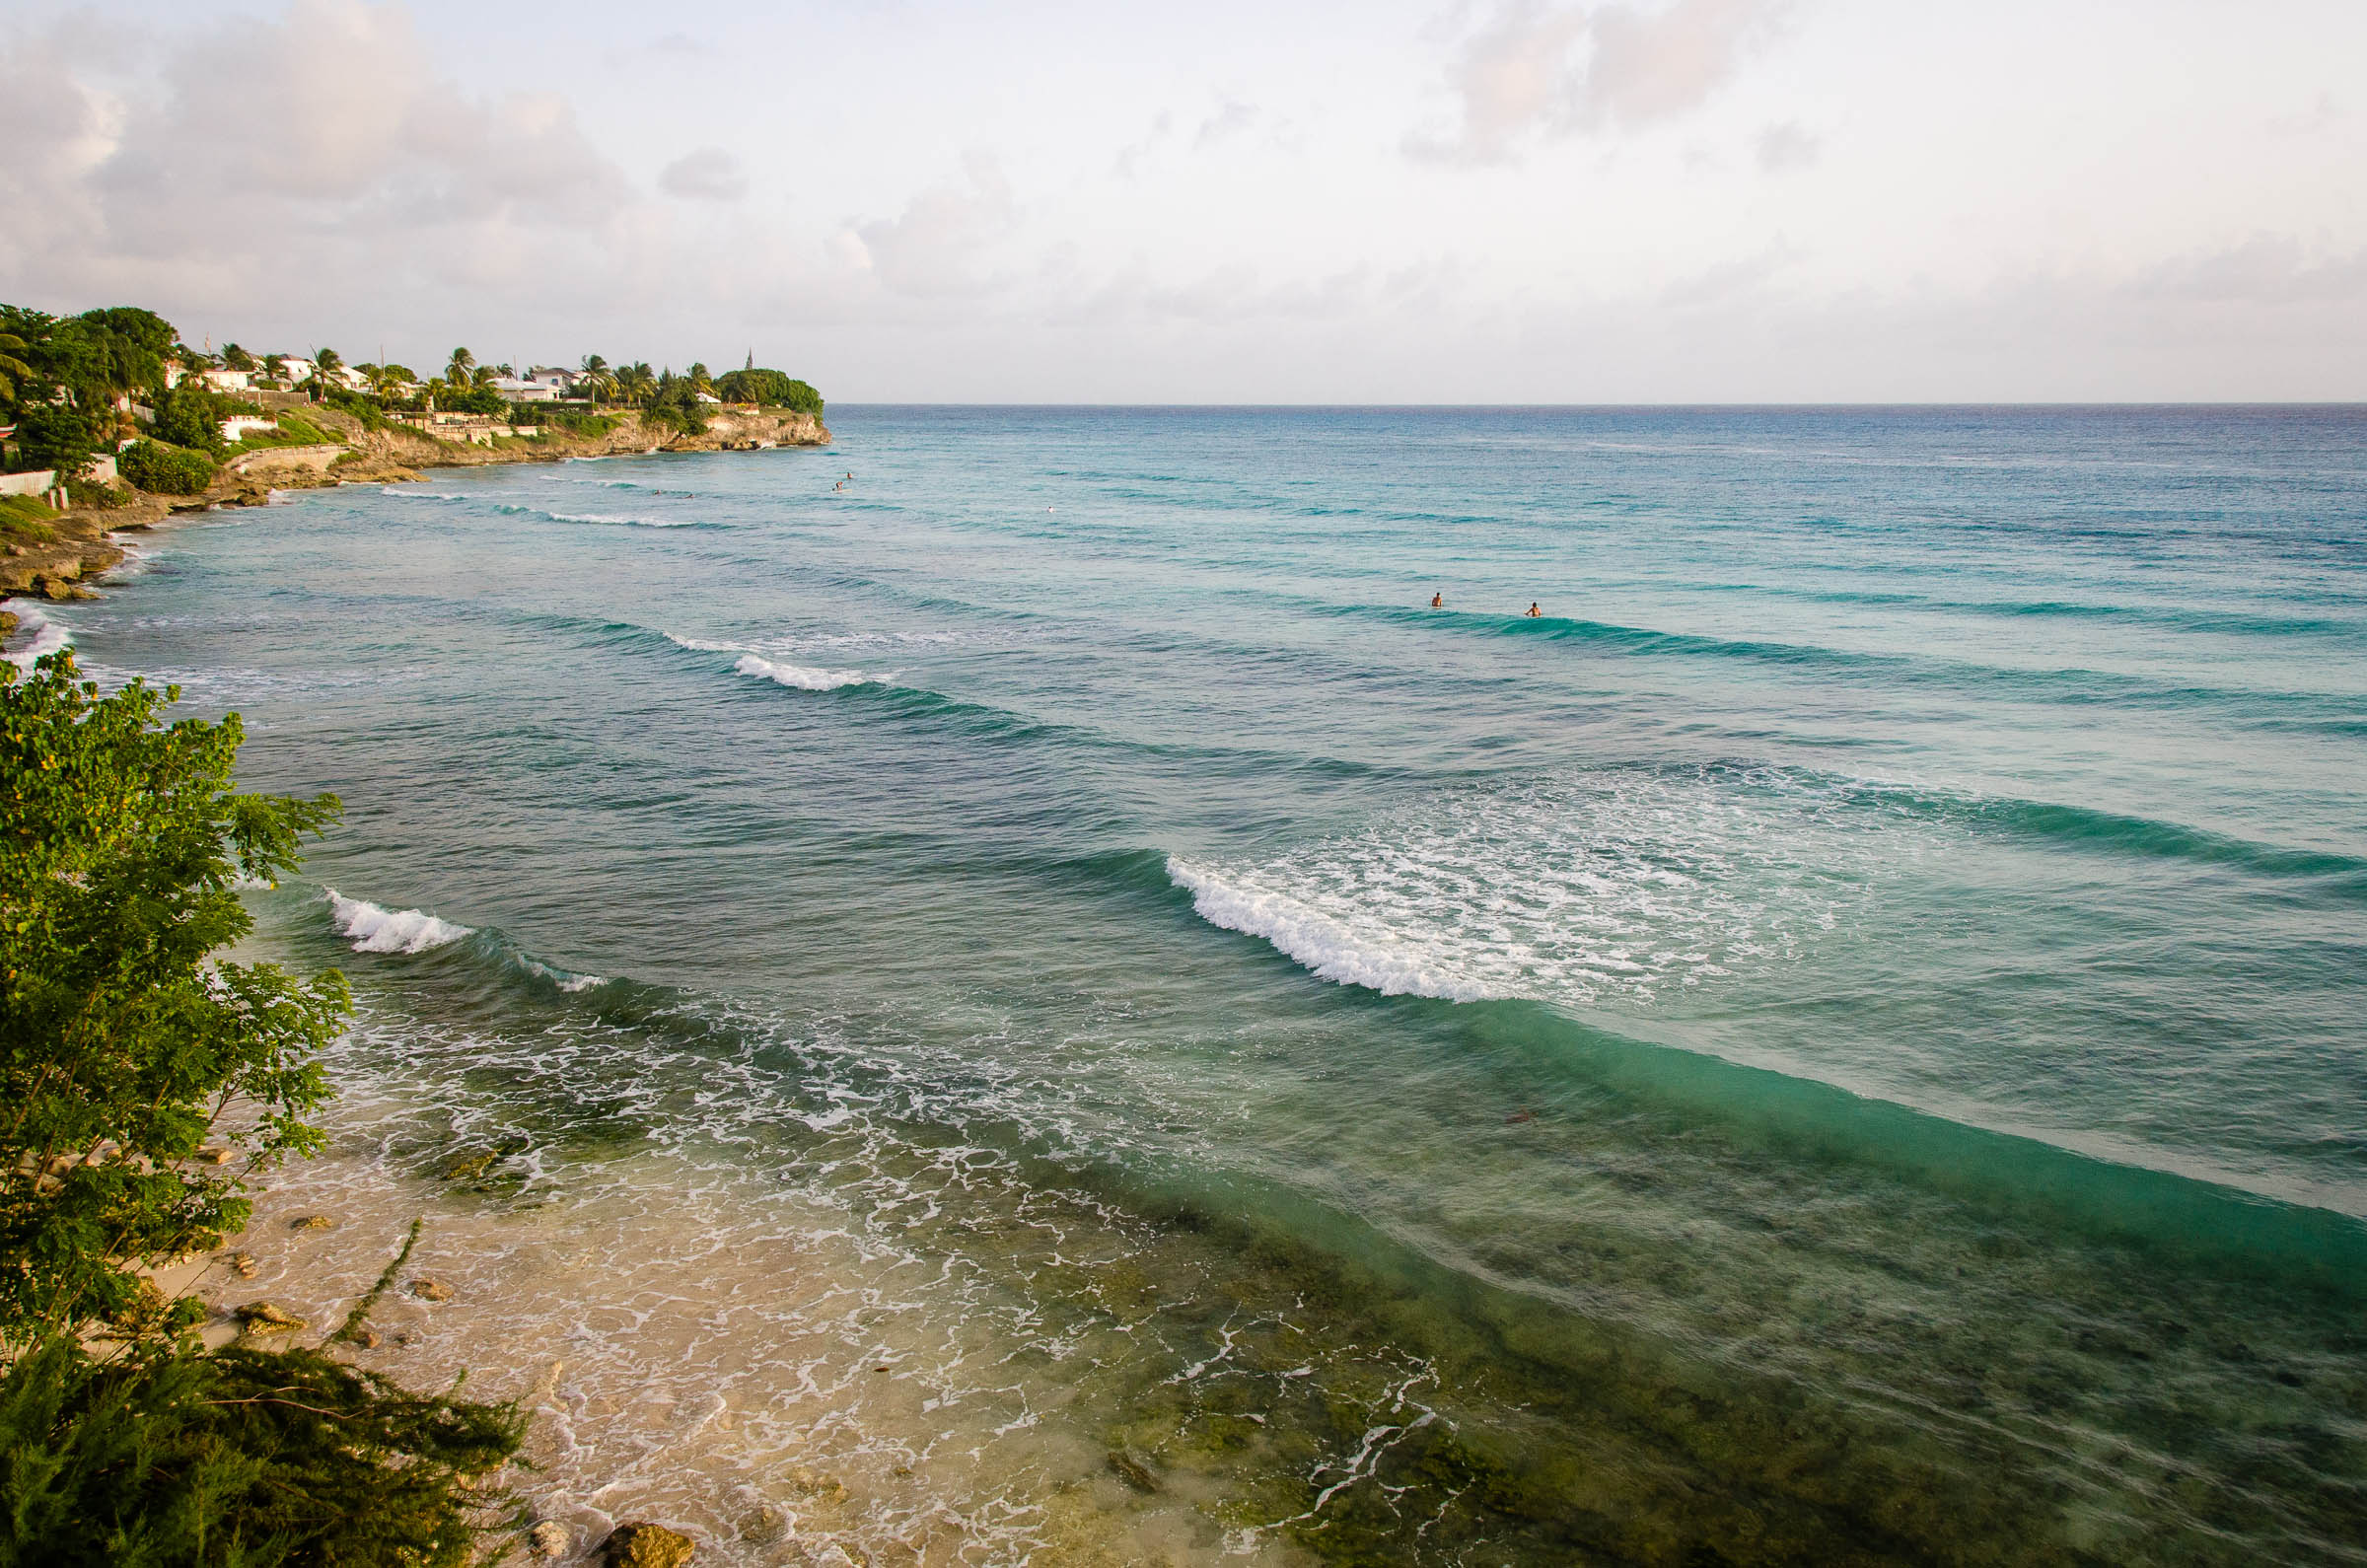 Freight's Bay, Barbados by Patrick Bennett